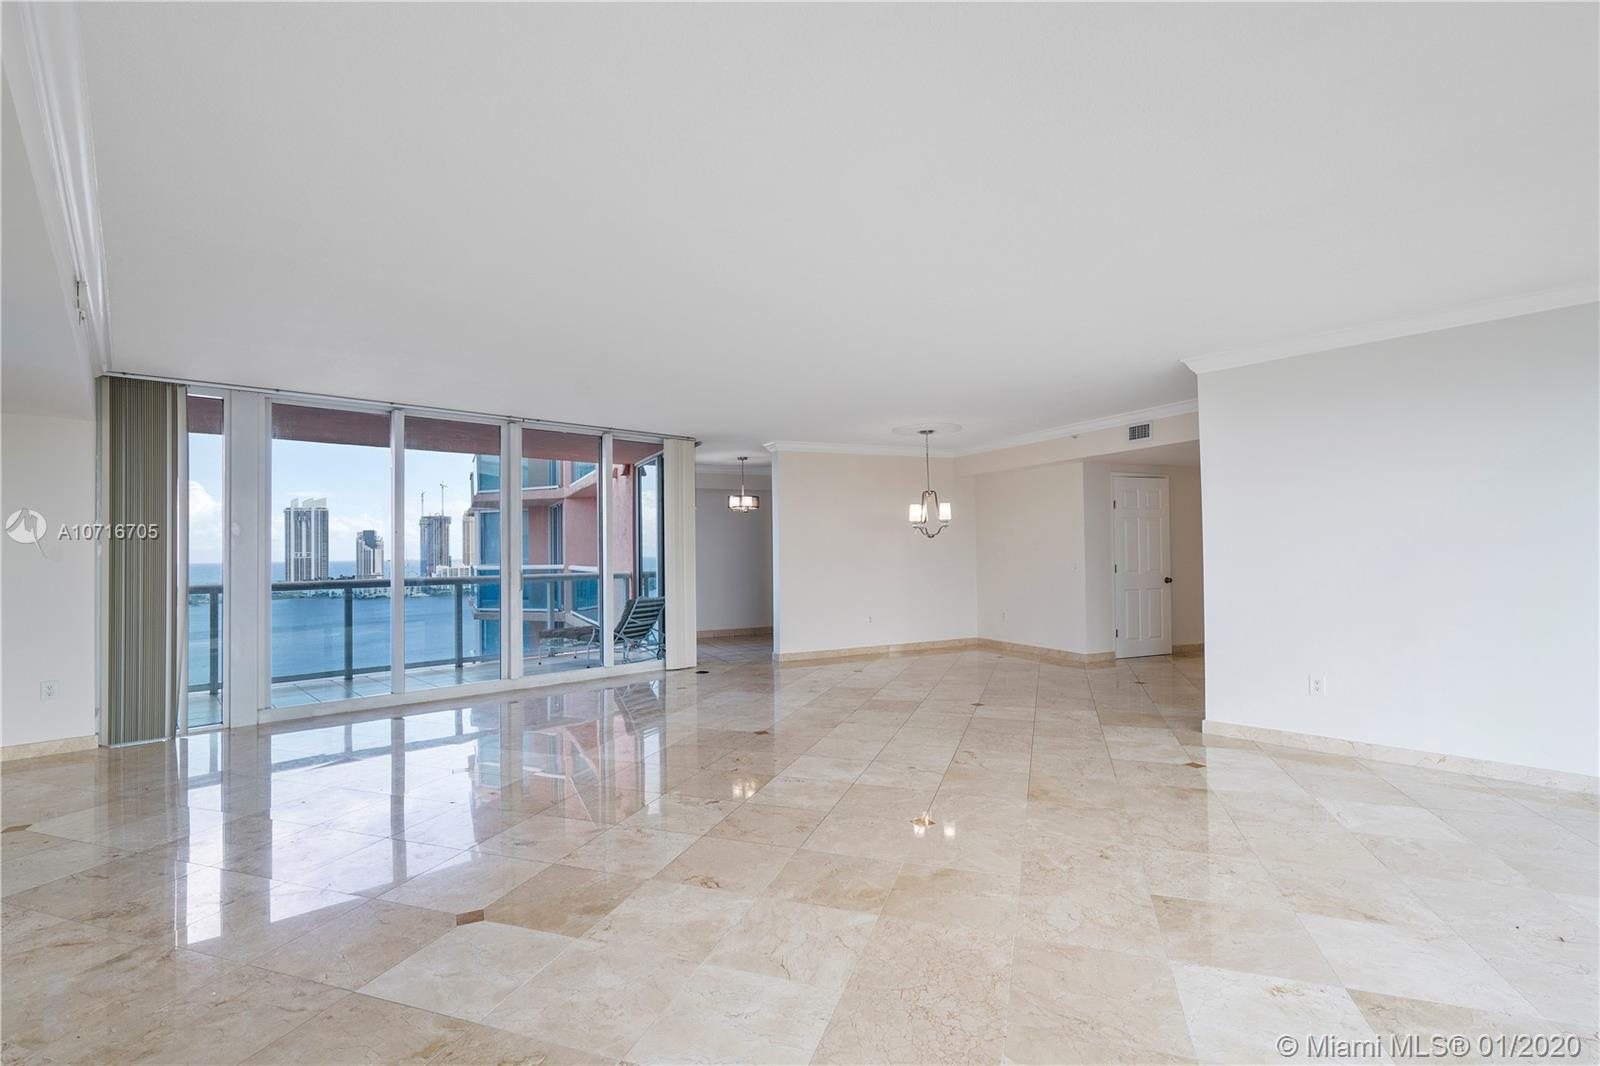 Enter from semi private elevator foyer to fabulous Hidden Bay Residence with wide open space. 2 sided glass flow thru offers stunning panoramic Intracoastal, Ocean + Golf Course views. 1,870 interior SF plan, wide oversized living room, 2 bedrooms + den or 3rd bedroom & 2.5 baths. Finest finishes include marble floors in living area, redone kitchen, 2 deeded parking spaces and storage. 24h guard gated acres with 5* amenities including New Lobby + Common areas, 2 story spa, gym, private 65 slip Marina, 4 tennis courts, valet, concierge + more.